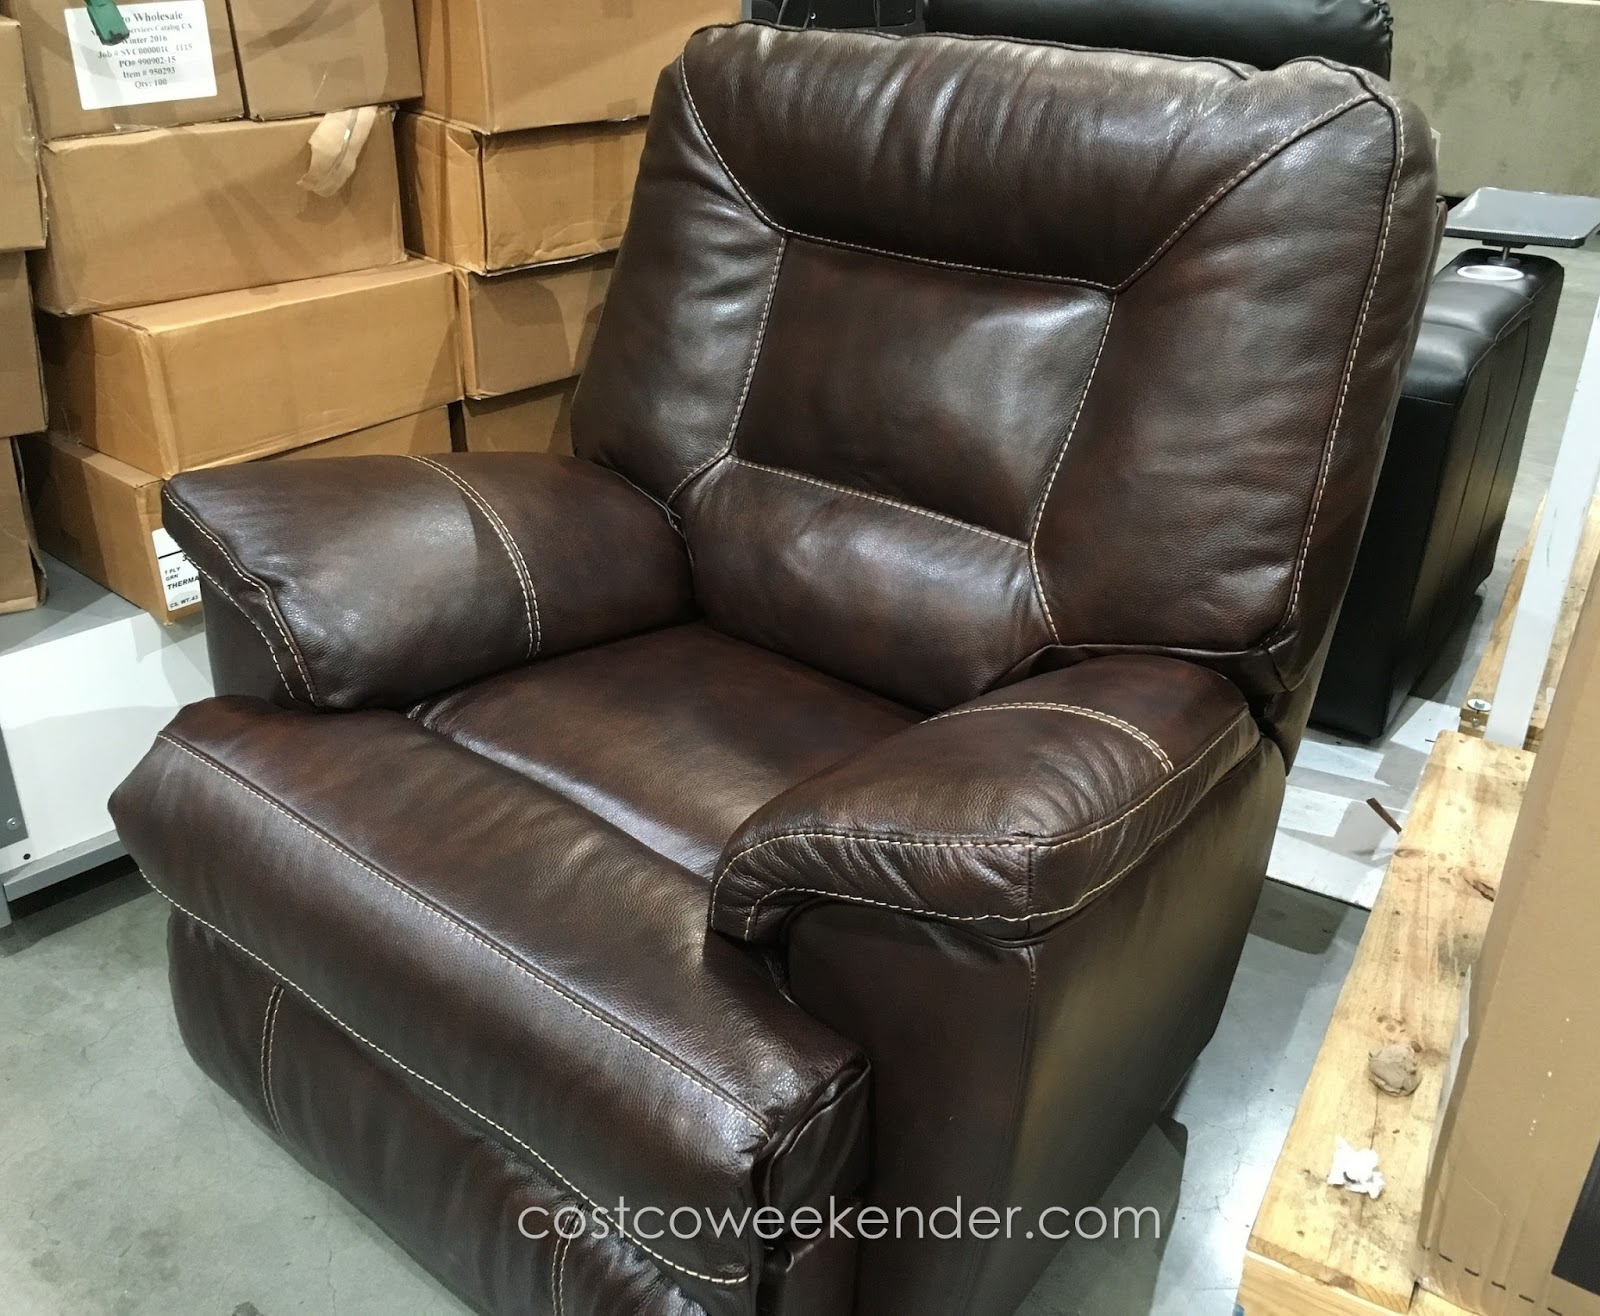 Berkline leather rocker recliner chair costco weekender for Berkline furniture chaise lounge